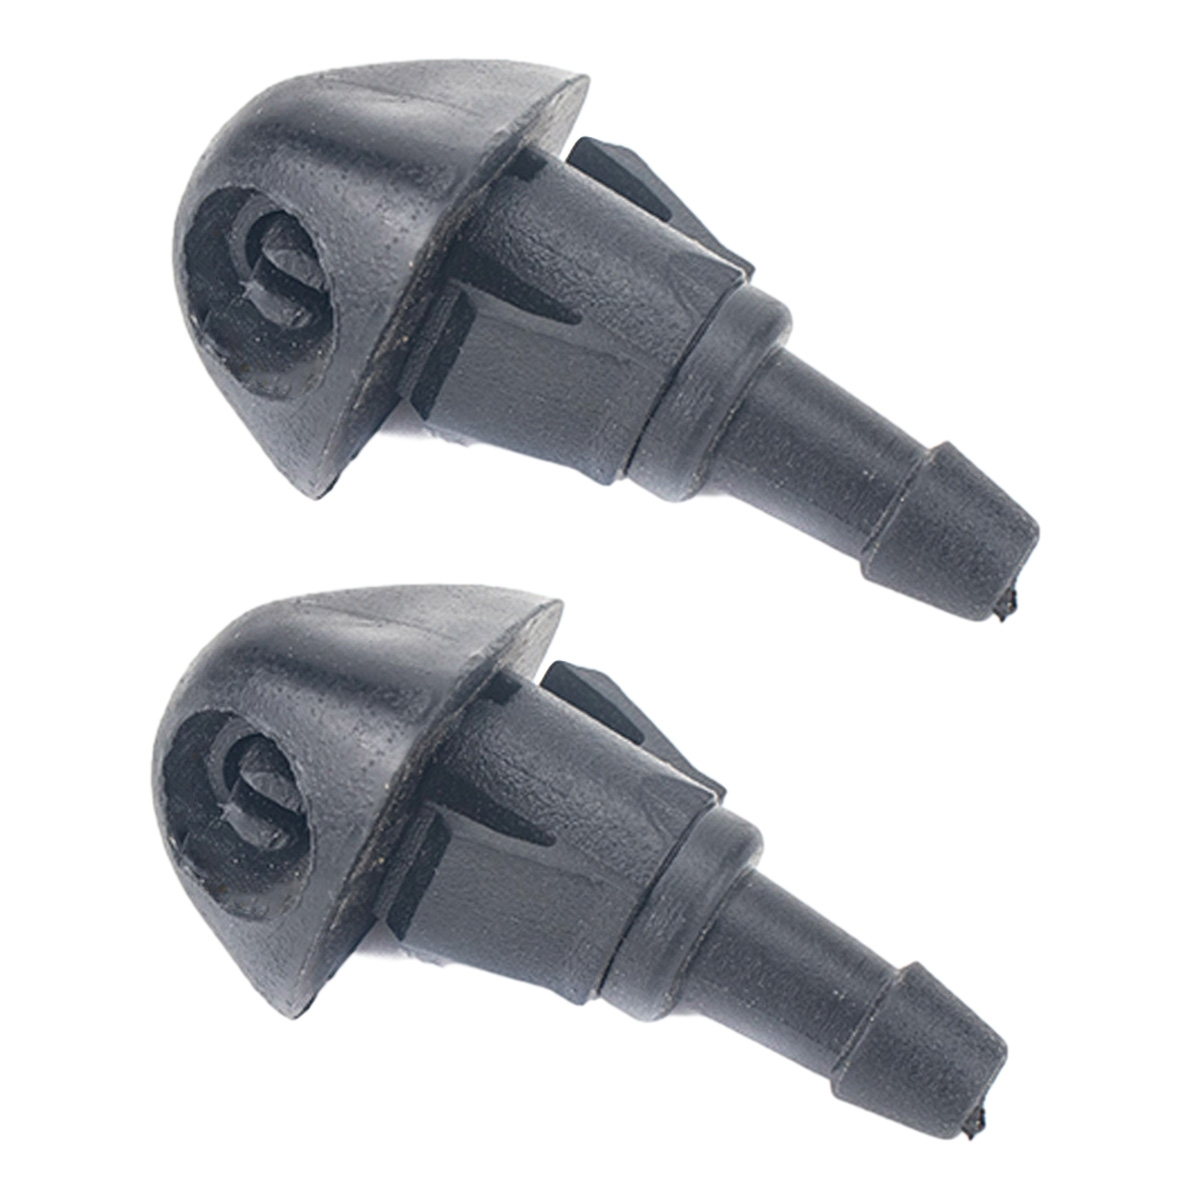 2 PCS Windshield Washer Wiper Jet Water Spray Nozzle + Hose Connector Set 76810S10A02 for Honda